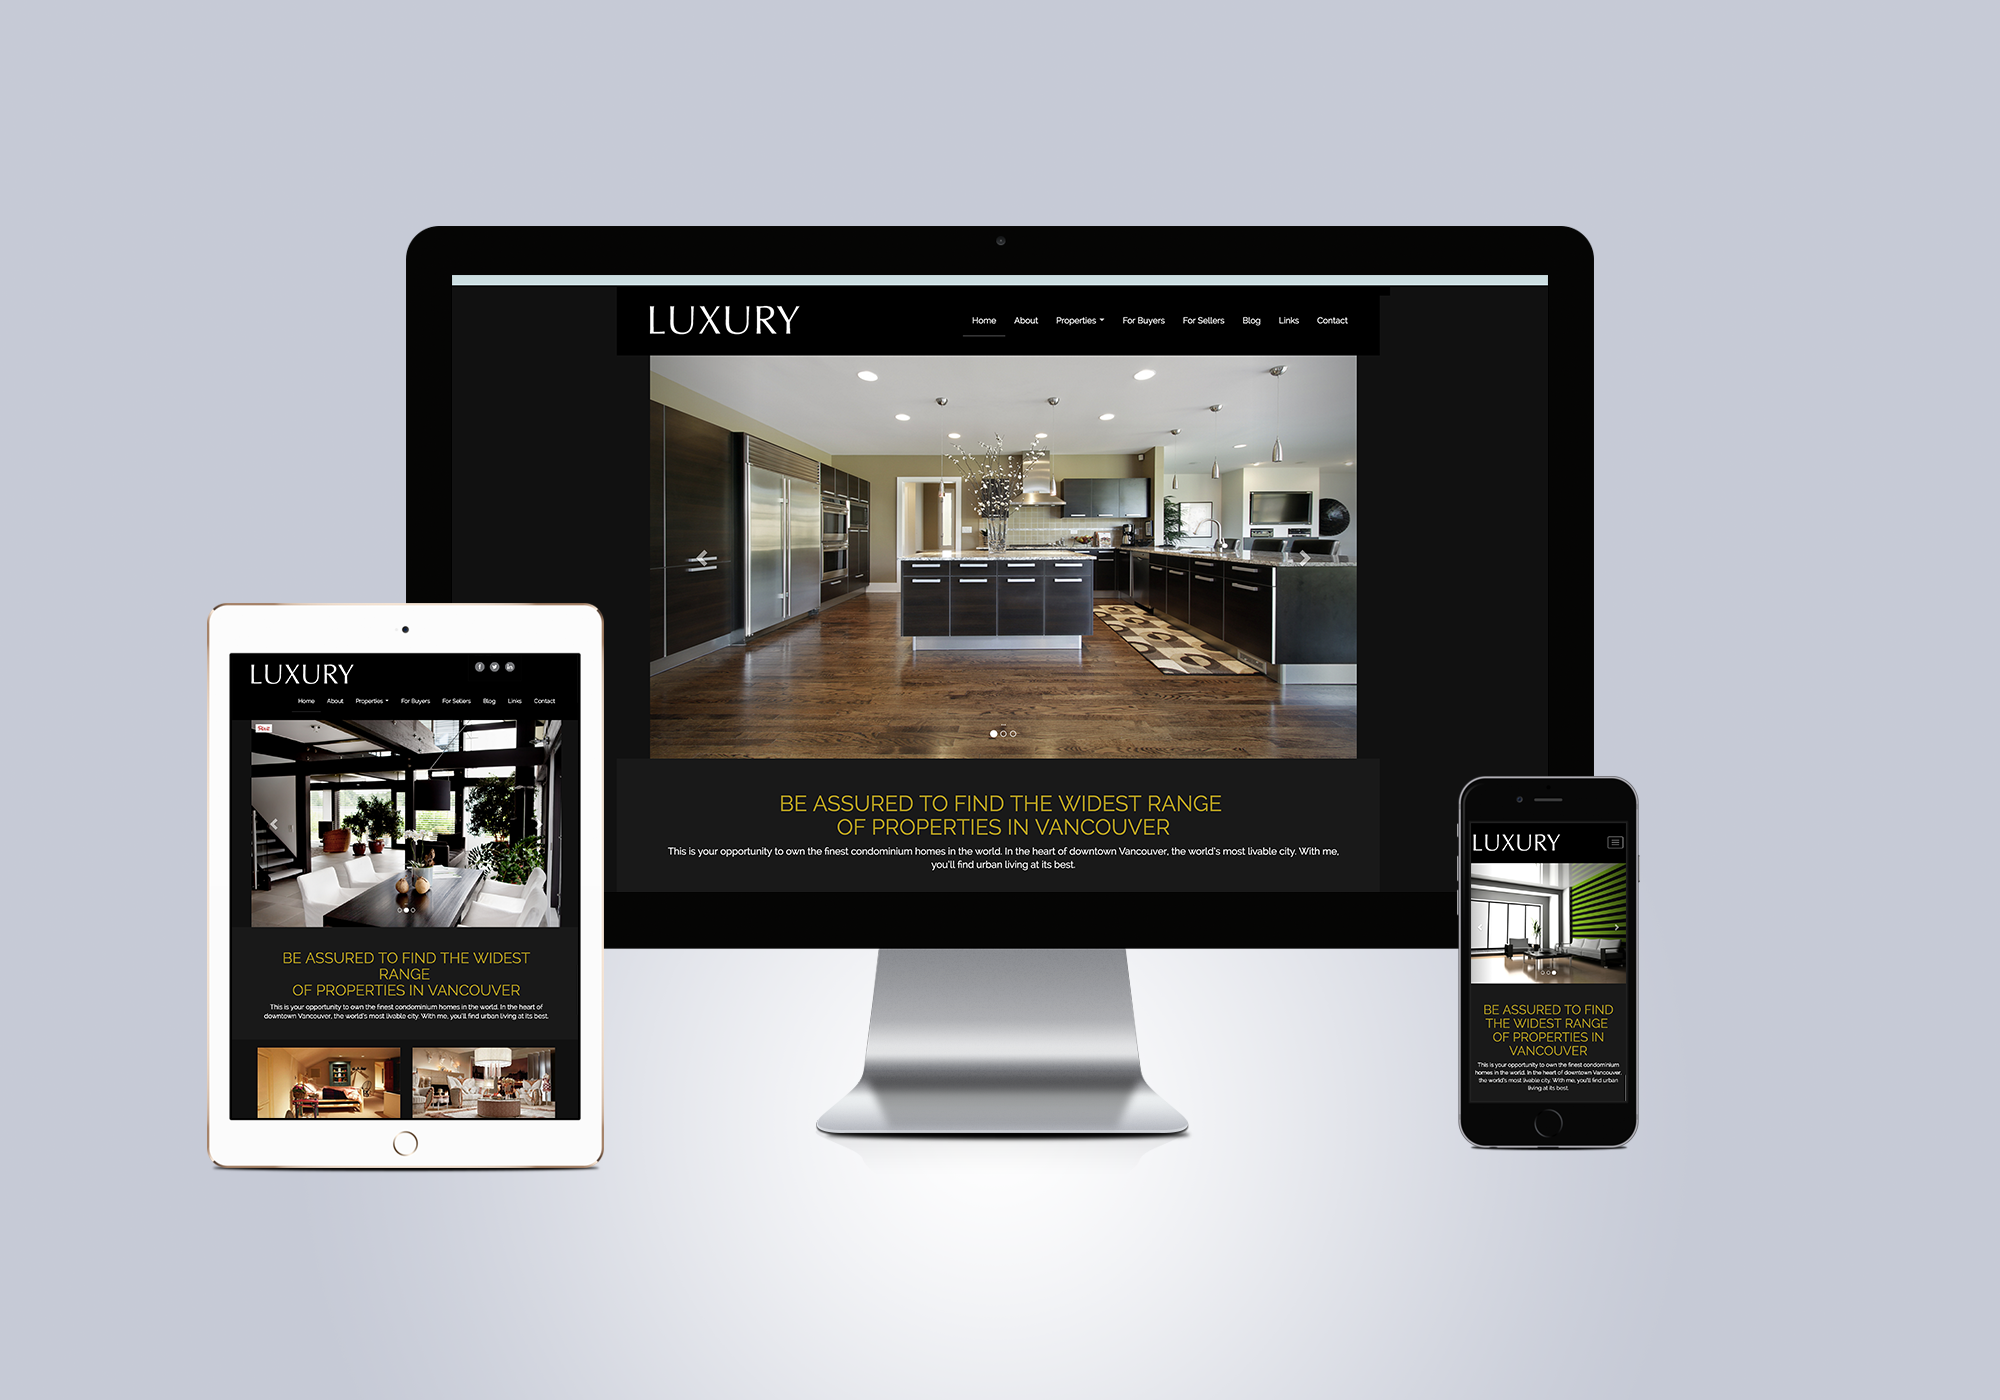 Ubertor Luxury Responsive Template for Real Estate Websites